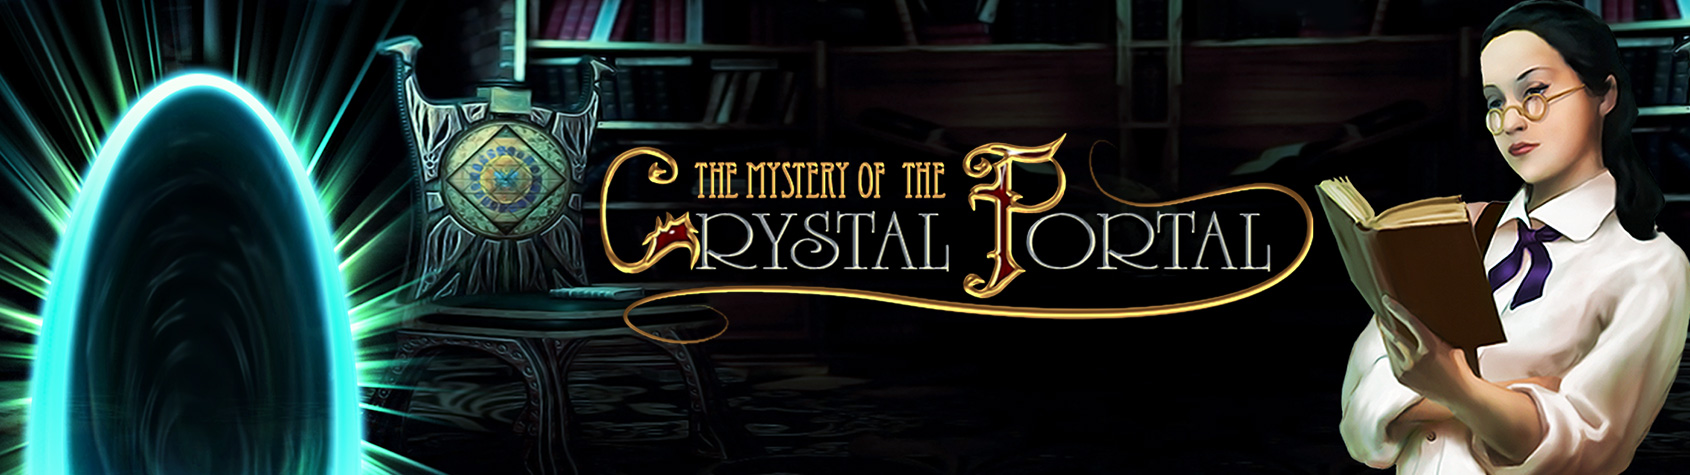 The Mystery of the Crystal Portal HD